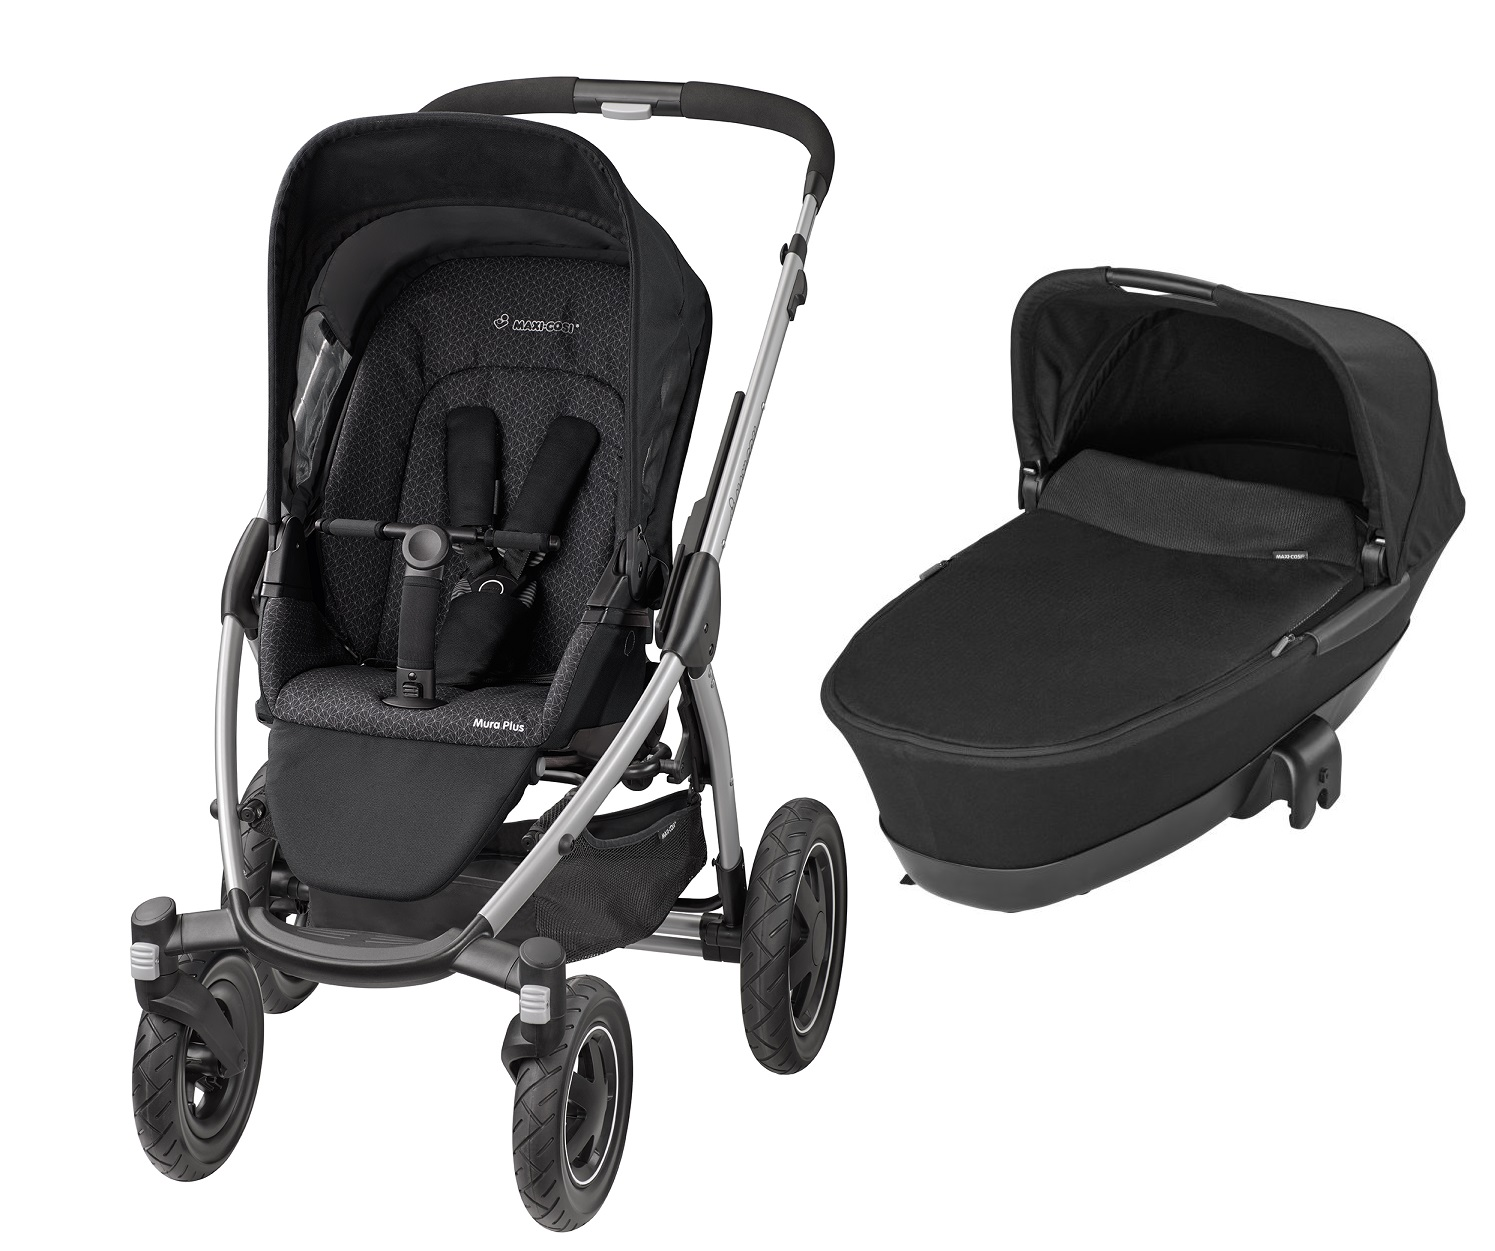 maxi cosi mura plus 4 incl dreamin carrycot attachment 2016 black crystal buy at kidsroom. Black Bedroom Furniture Sets. Home Design Ideas